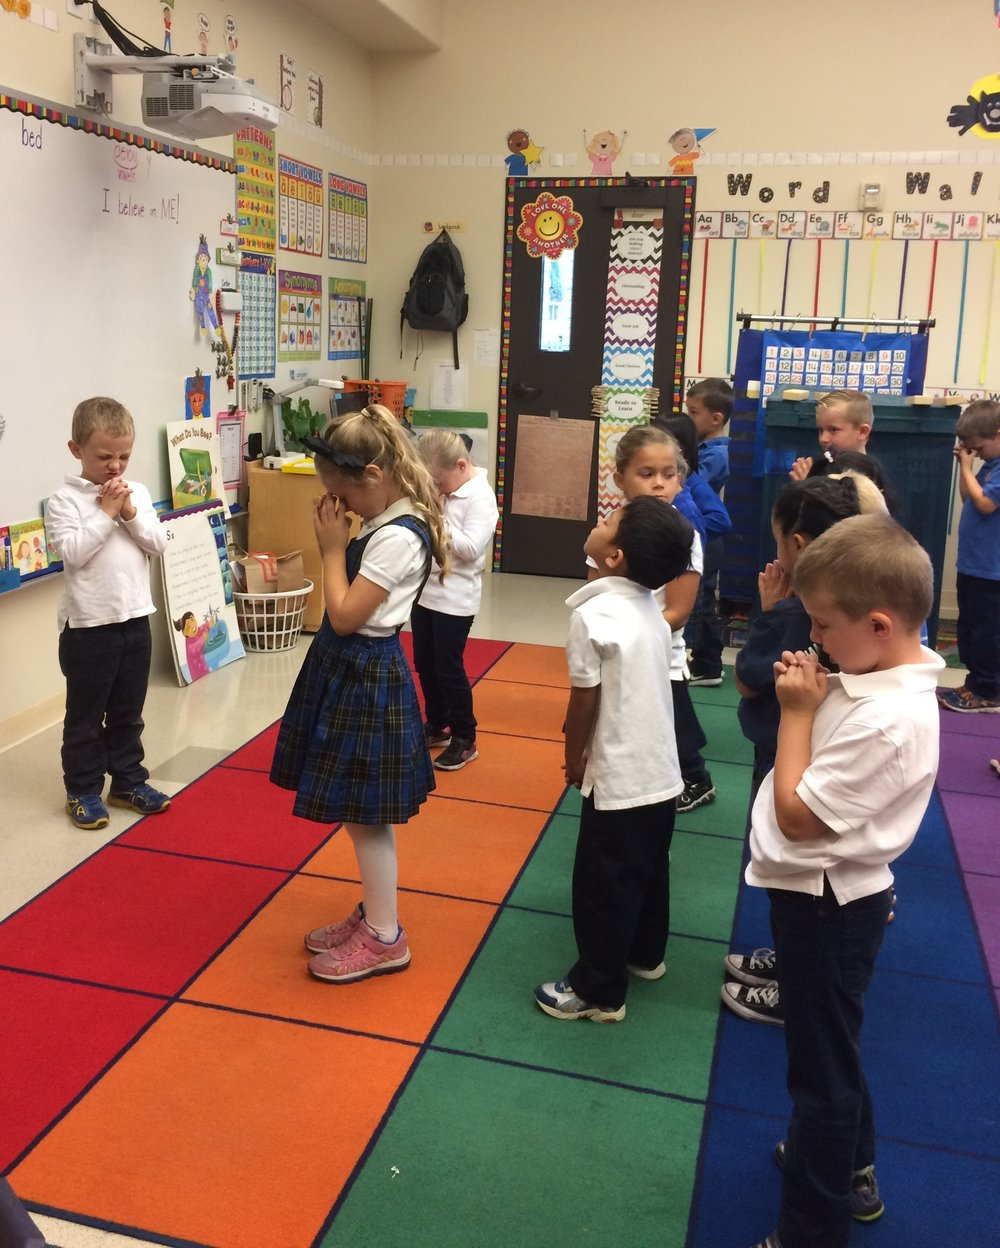 Each morning we say our prayers, we ask the children if they have any special intentions, after those are said aloud,the children pray for their own intentions. It is so sweet to see them pray!